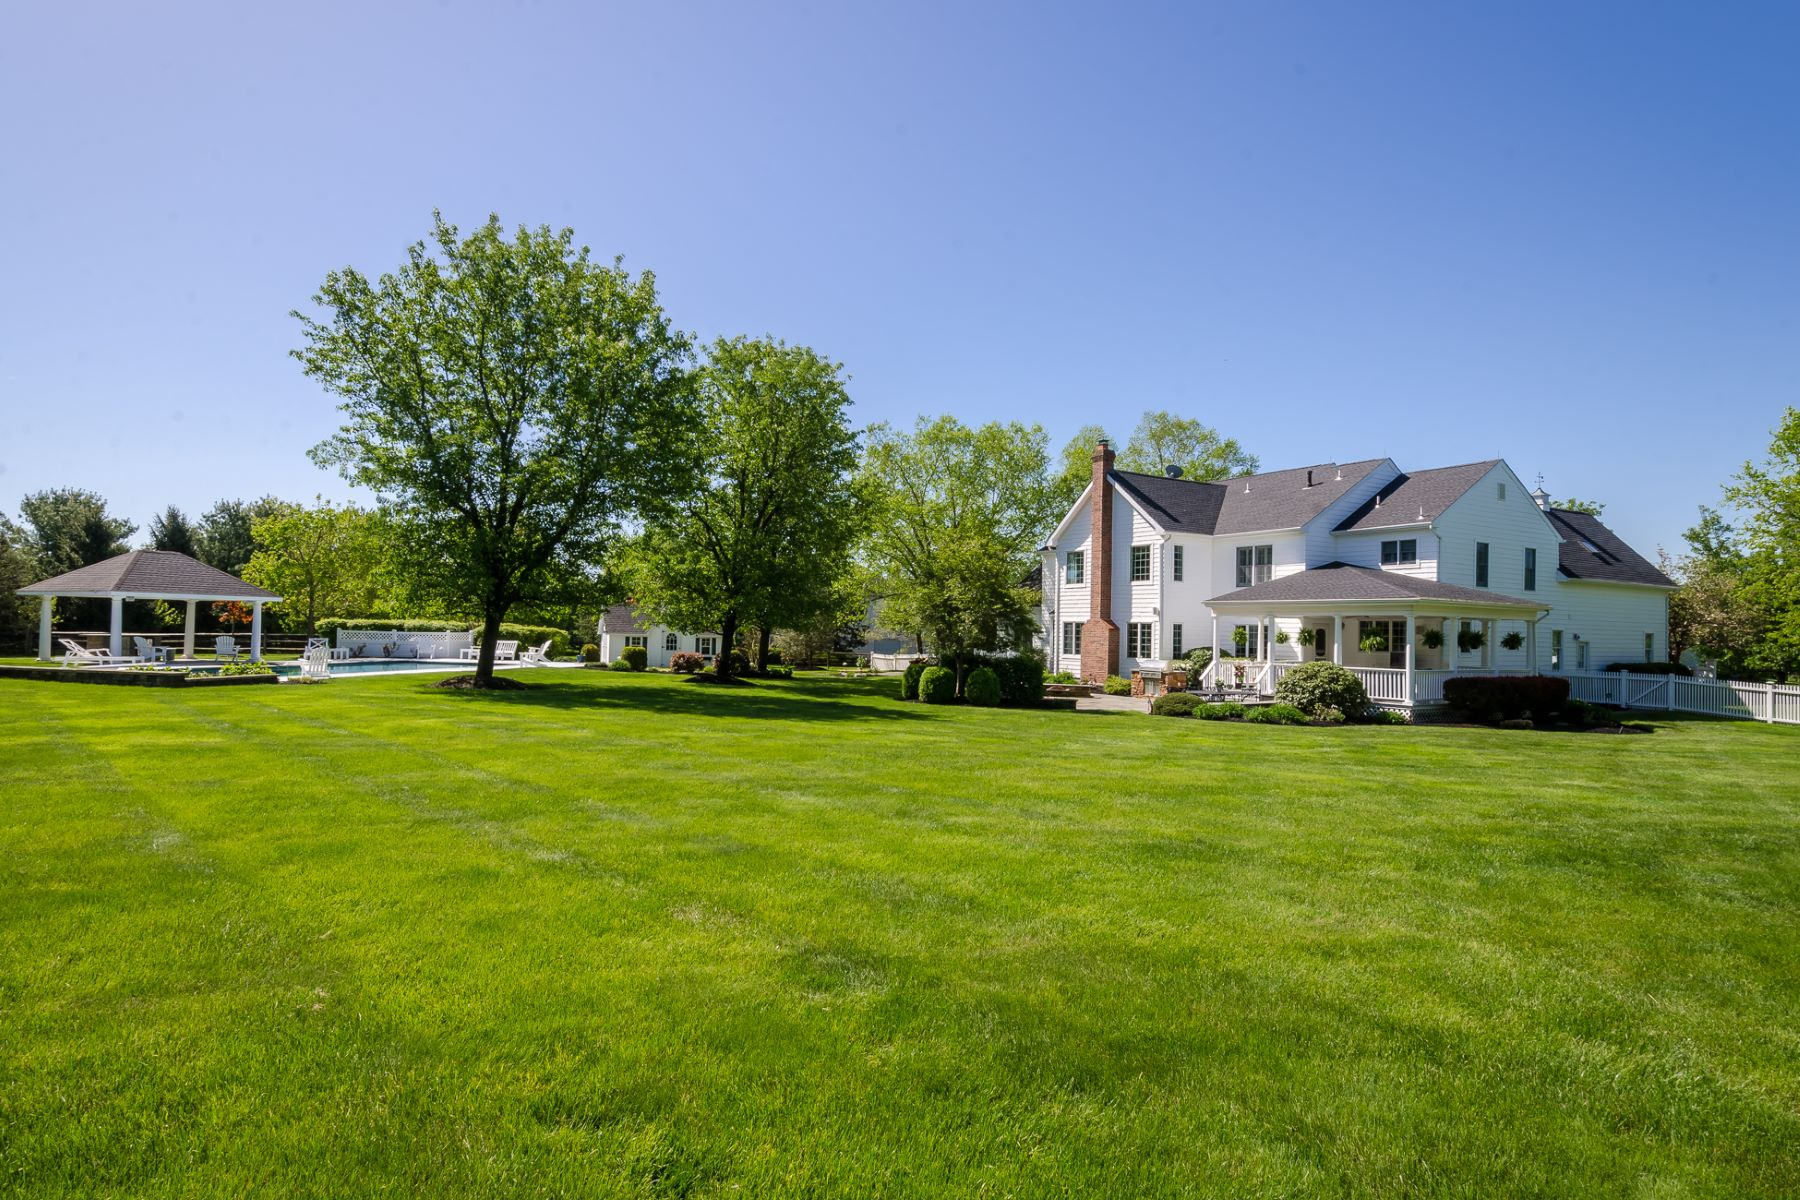 Additional photo for property listing at Nantucket Style At Every Turn 37 Blue Heron Way, Skillman, New Jersey 08558 United States